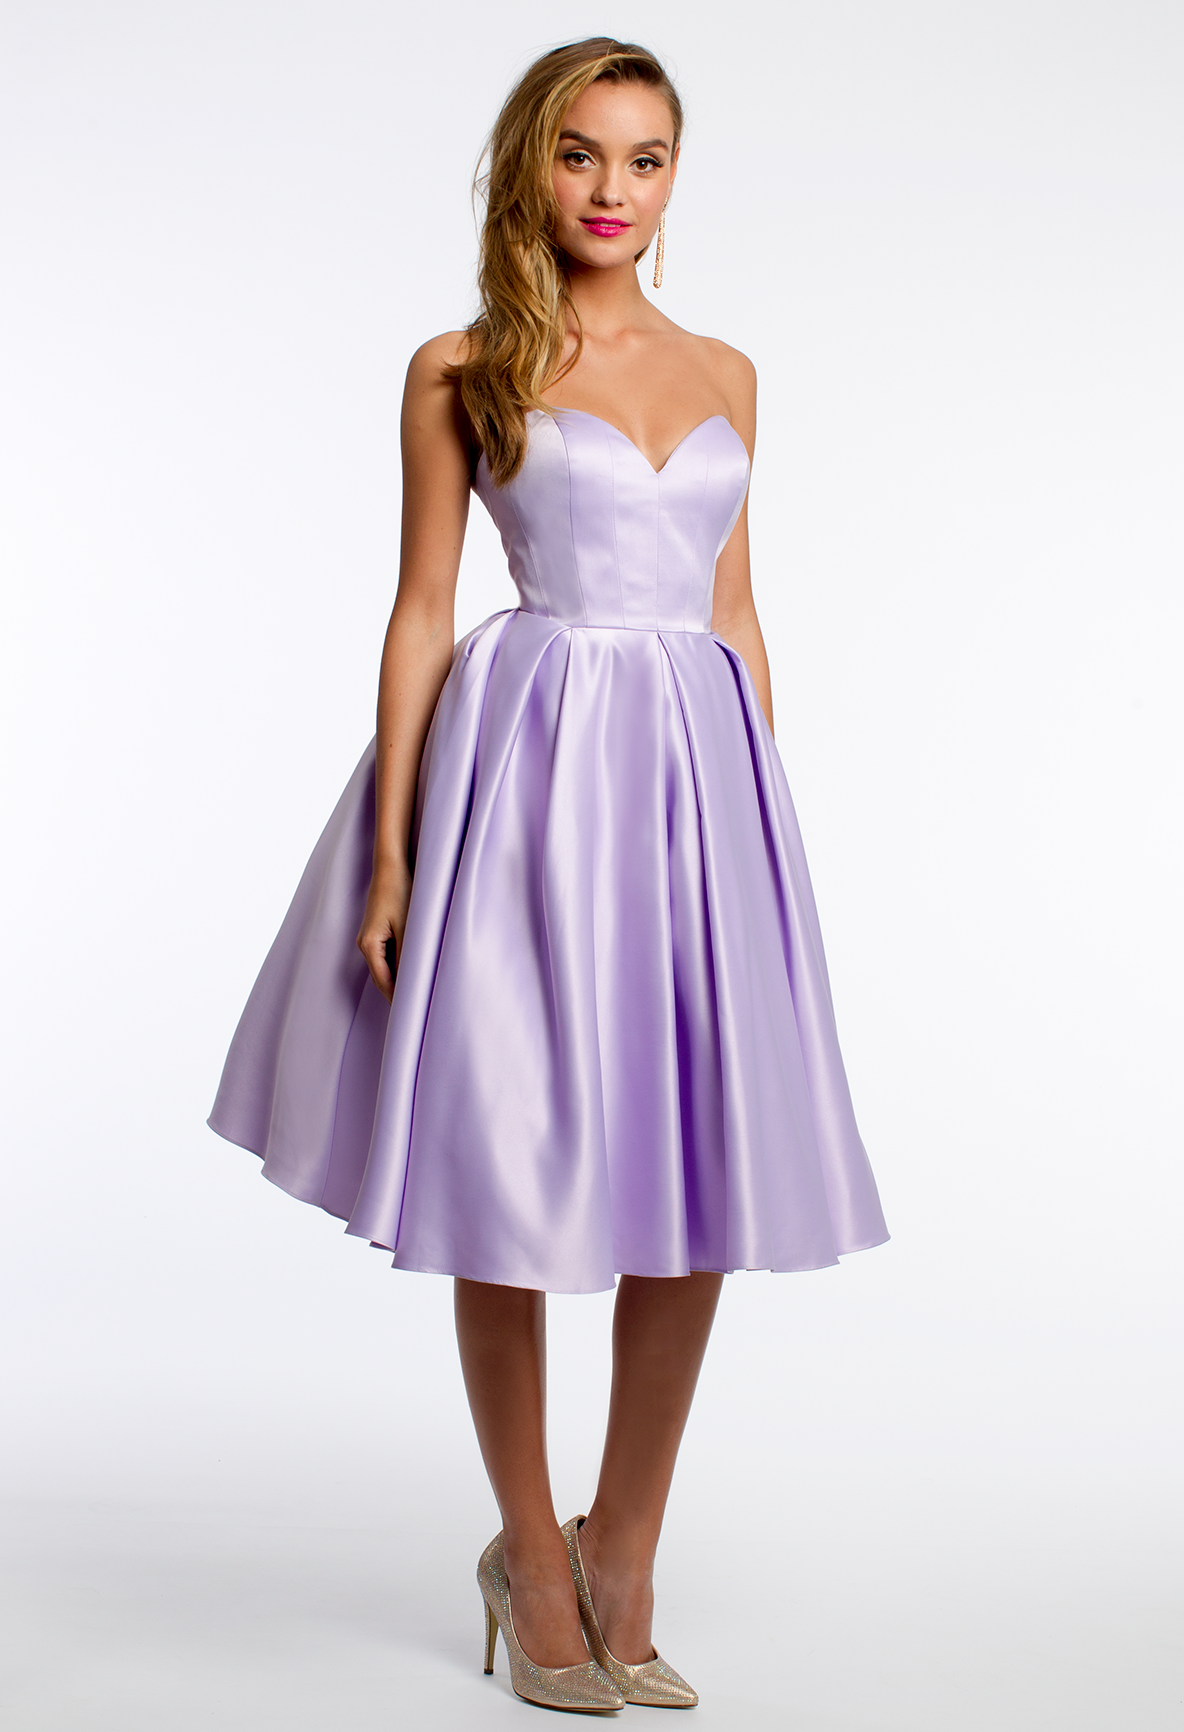 Strapless Sweetheart Tea Length Dress #camillelavie | SPRING INTO ...